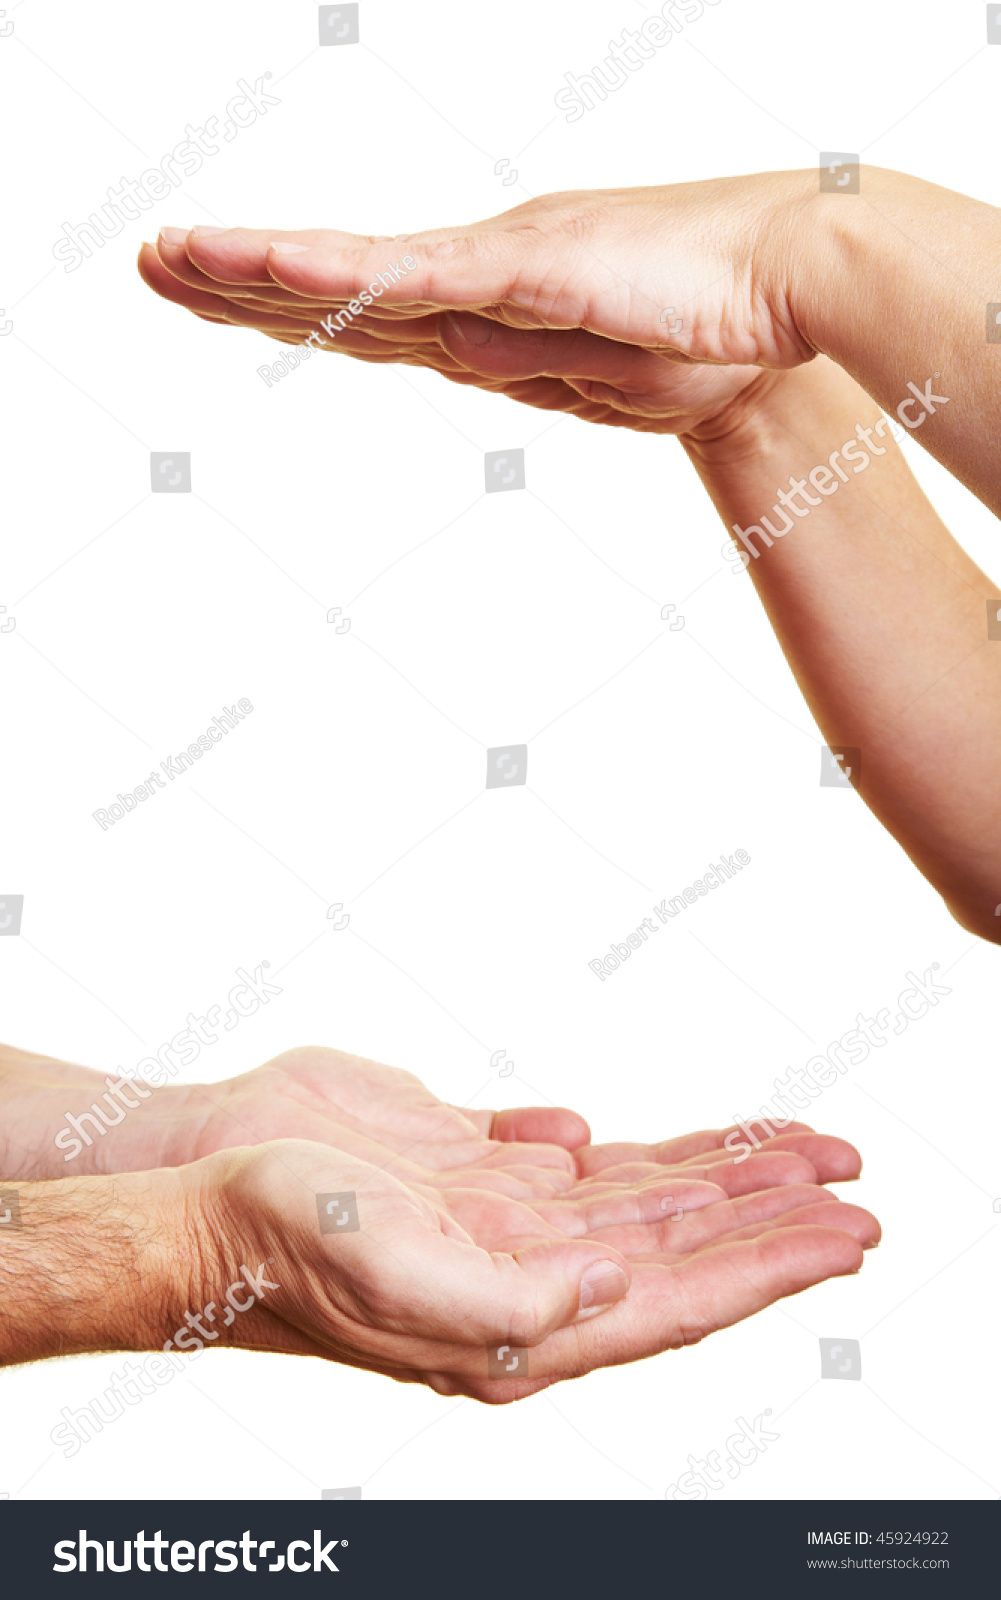 Two People Holding Their Hands Flat Stock Photo 45924922 ...